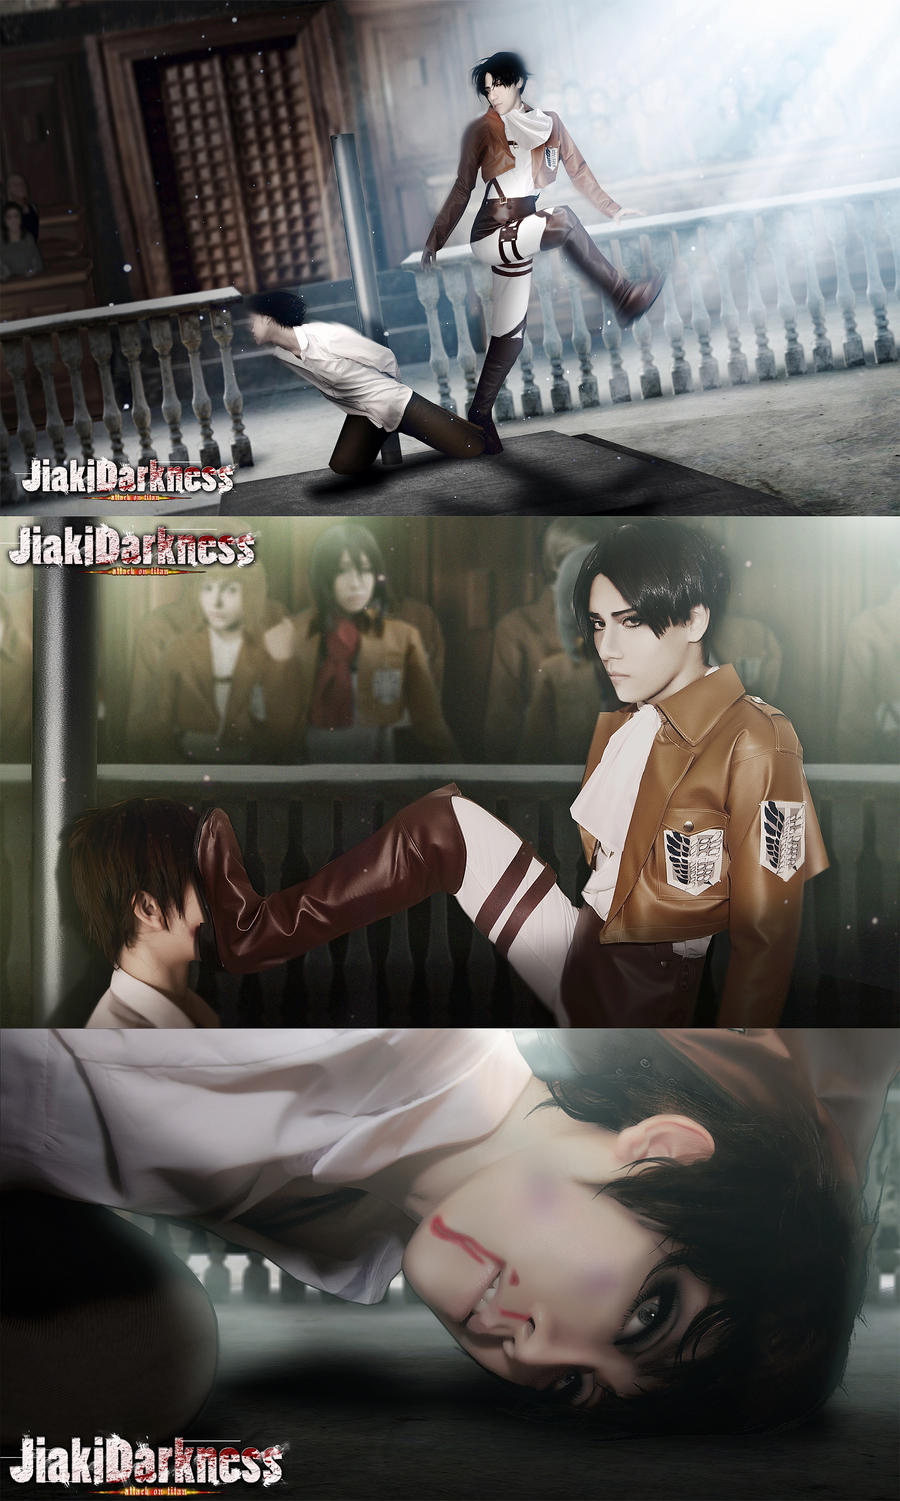 Revile Free Kick set Shingeki no Kyojin  cosplay by Jiakidarkness